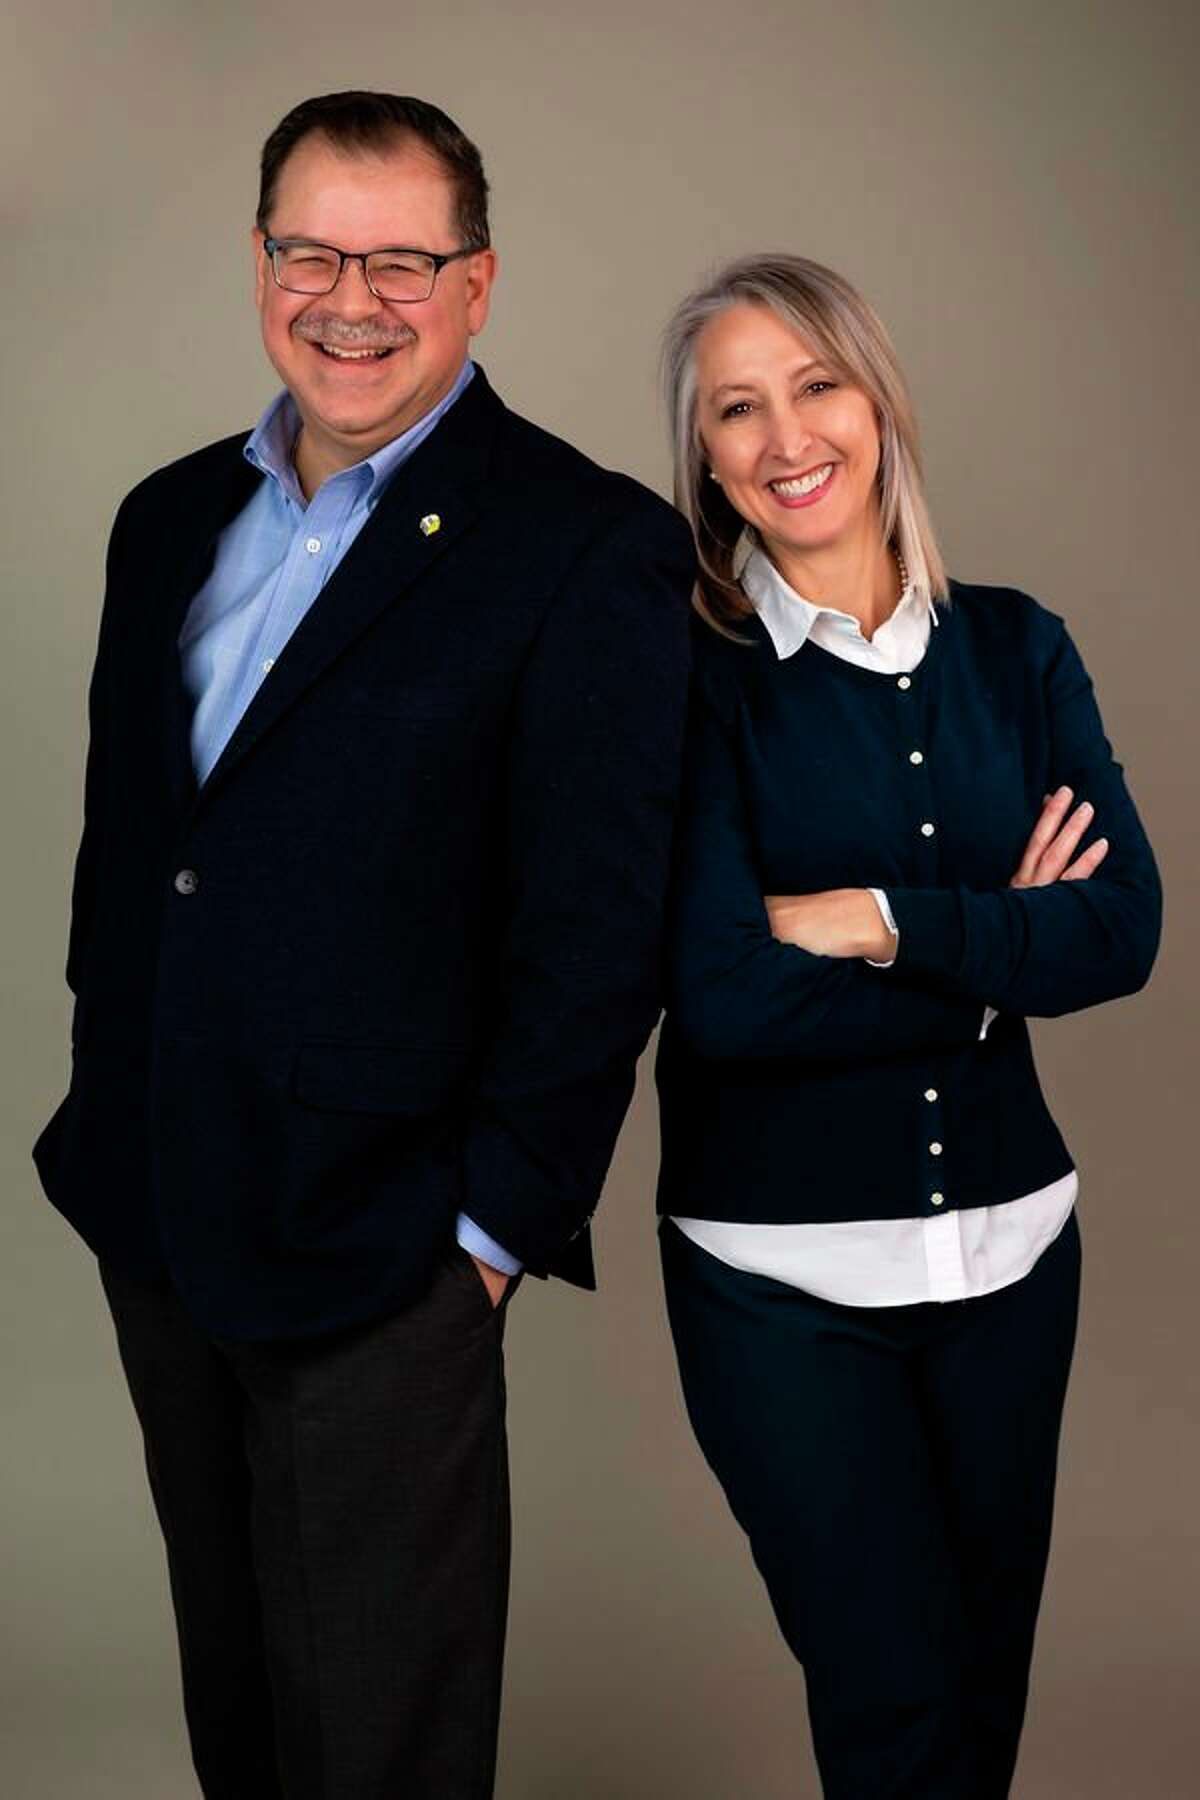 Tina and Jon Lynch of Midland are the honorary chairs of the 2019 Chefs for Shelterhouse fundraiser. The event will take place from 5 to 8 p.m. Thursday, May 9 at The Great Hall. (Photo provided)